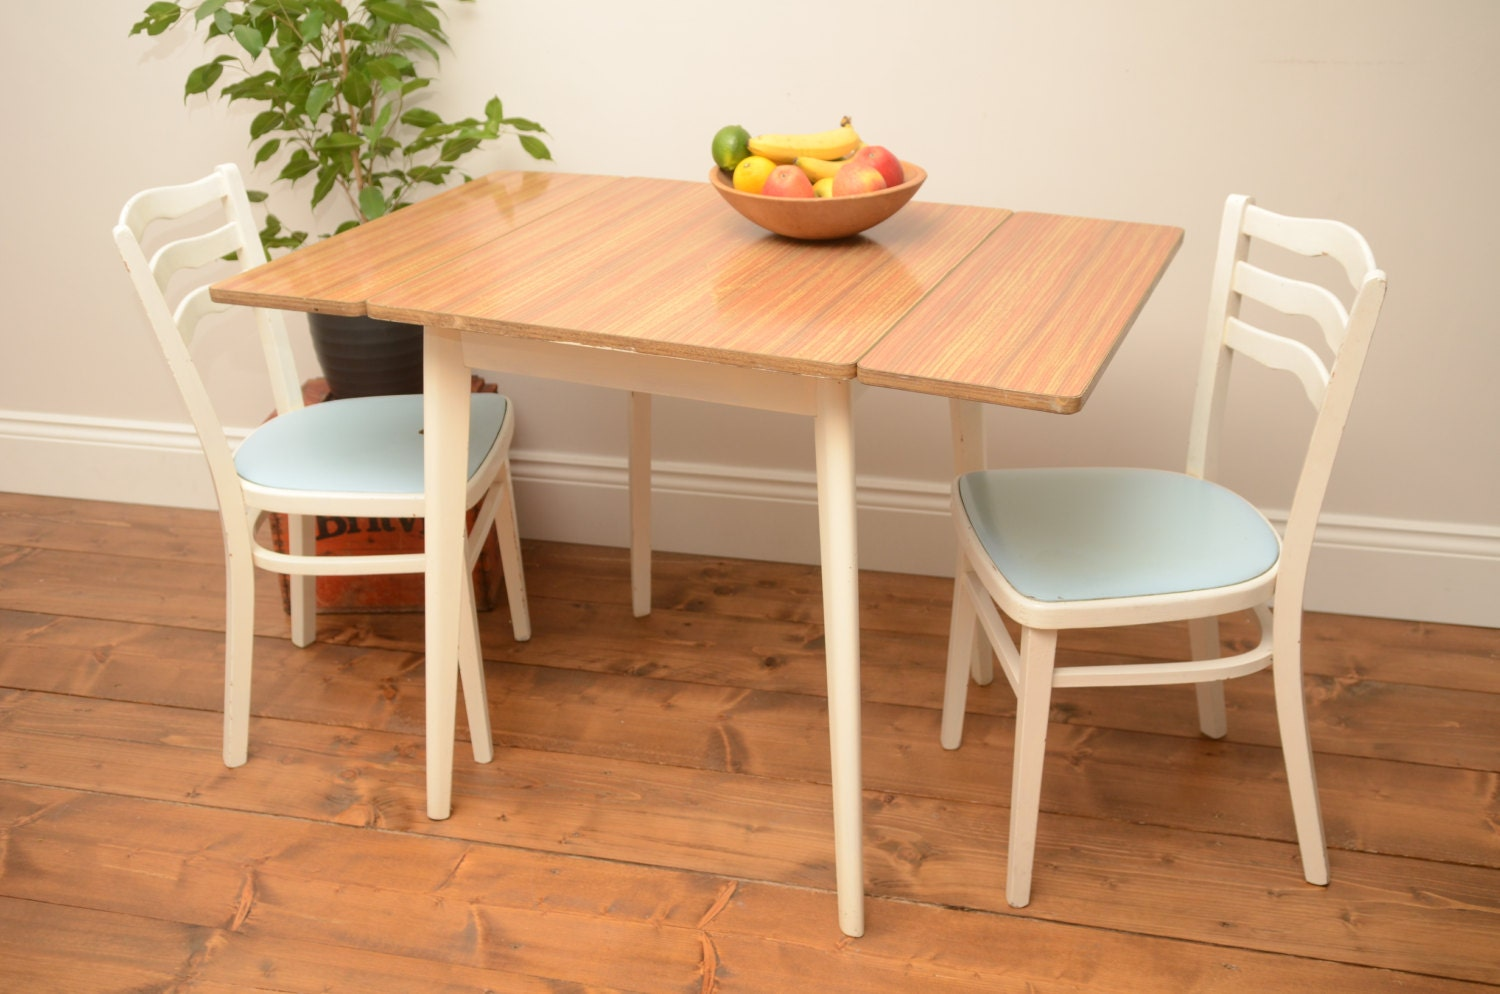 Nice vintage formica drop leaf dining table and chairs for Retro kitchen table and chairs